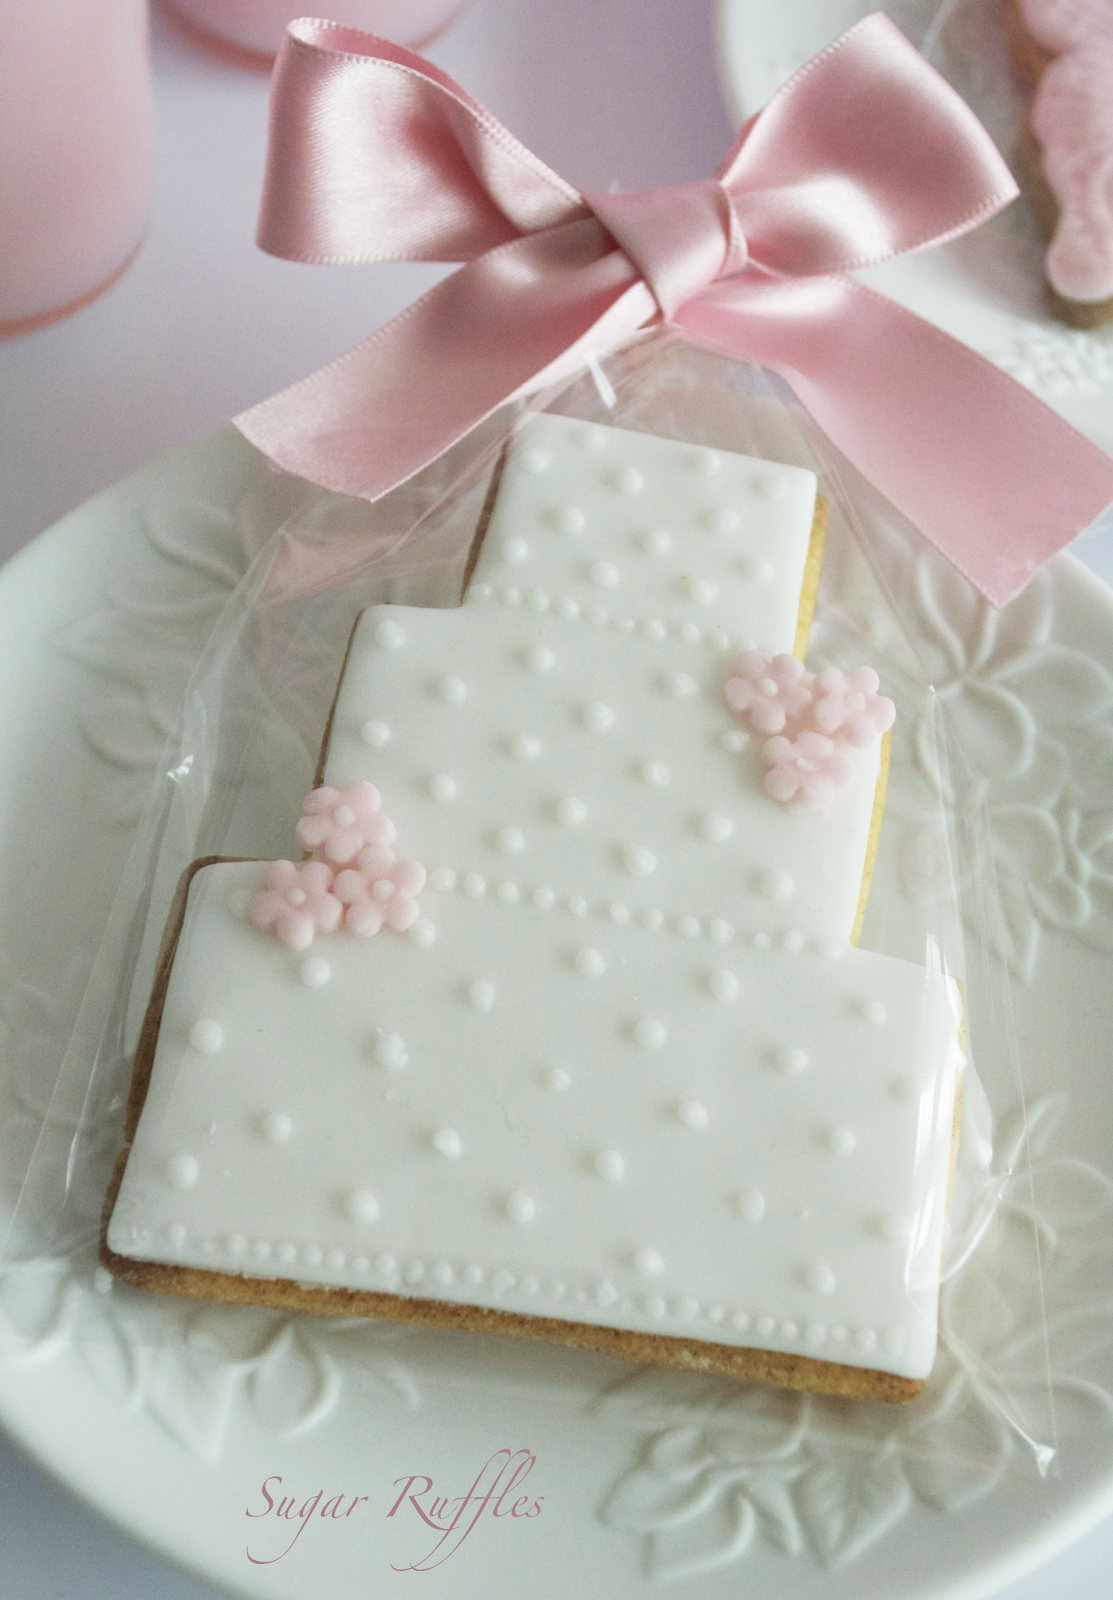 Wedding Favour Cookies Cupcake Wedding Favours We offer a range of ...